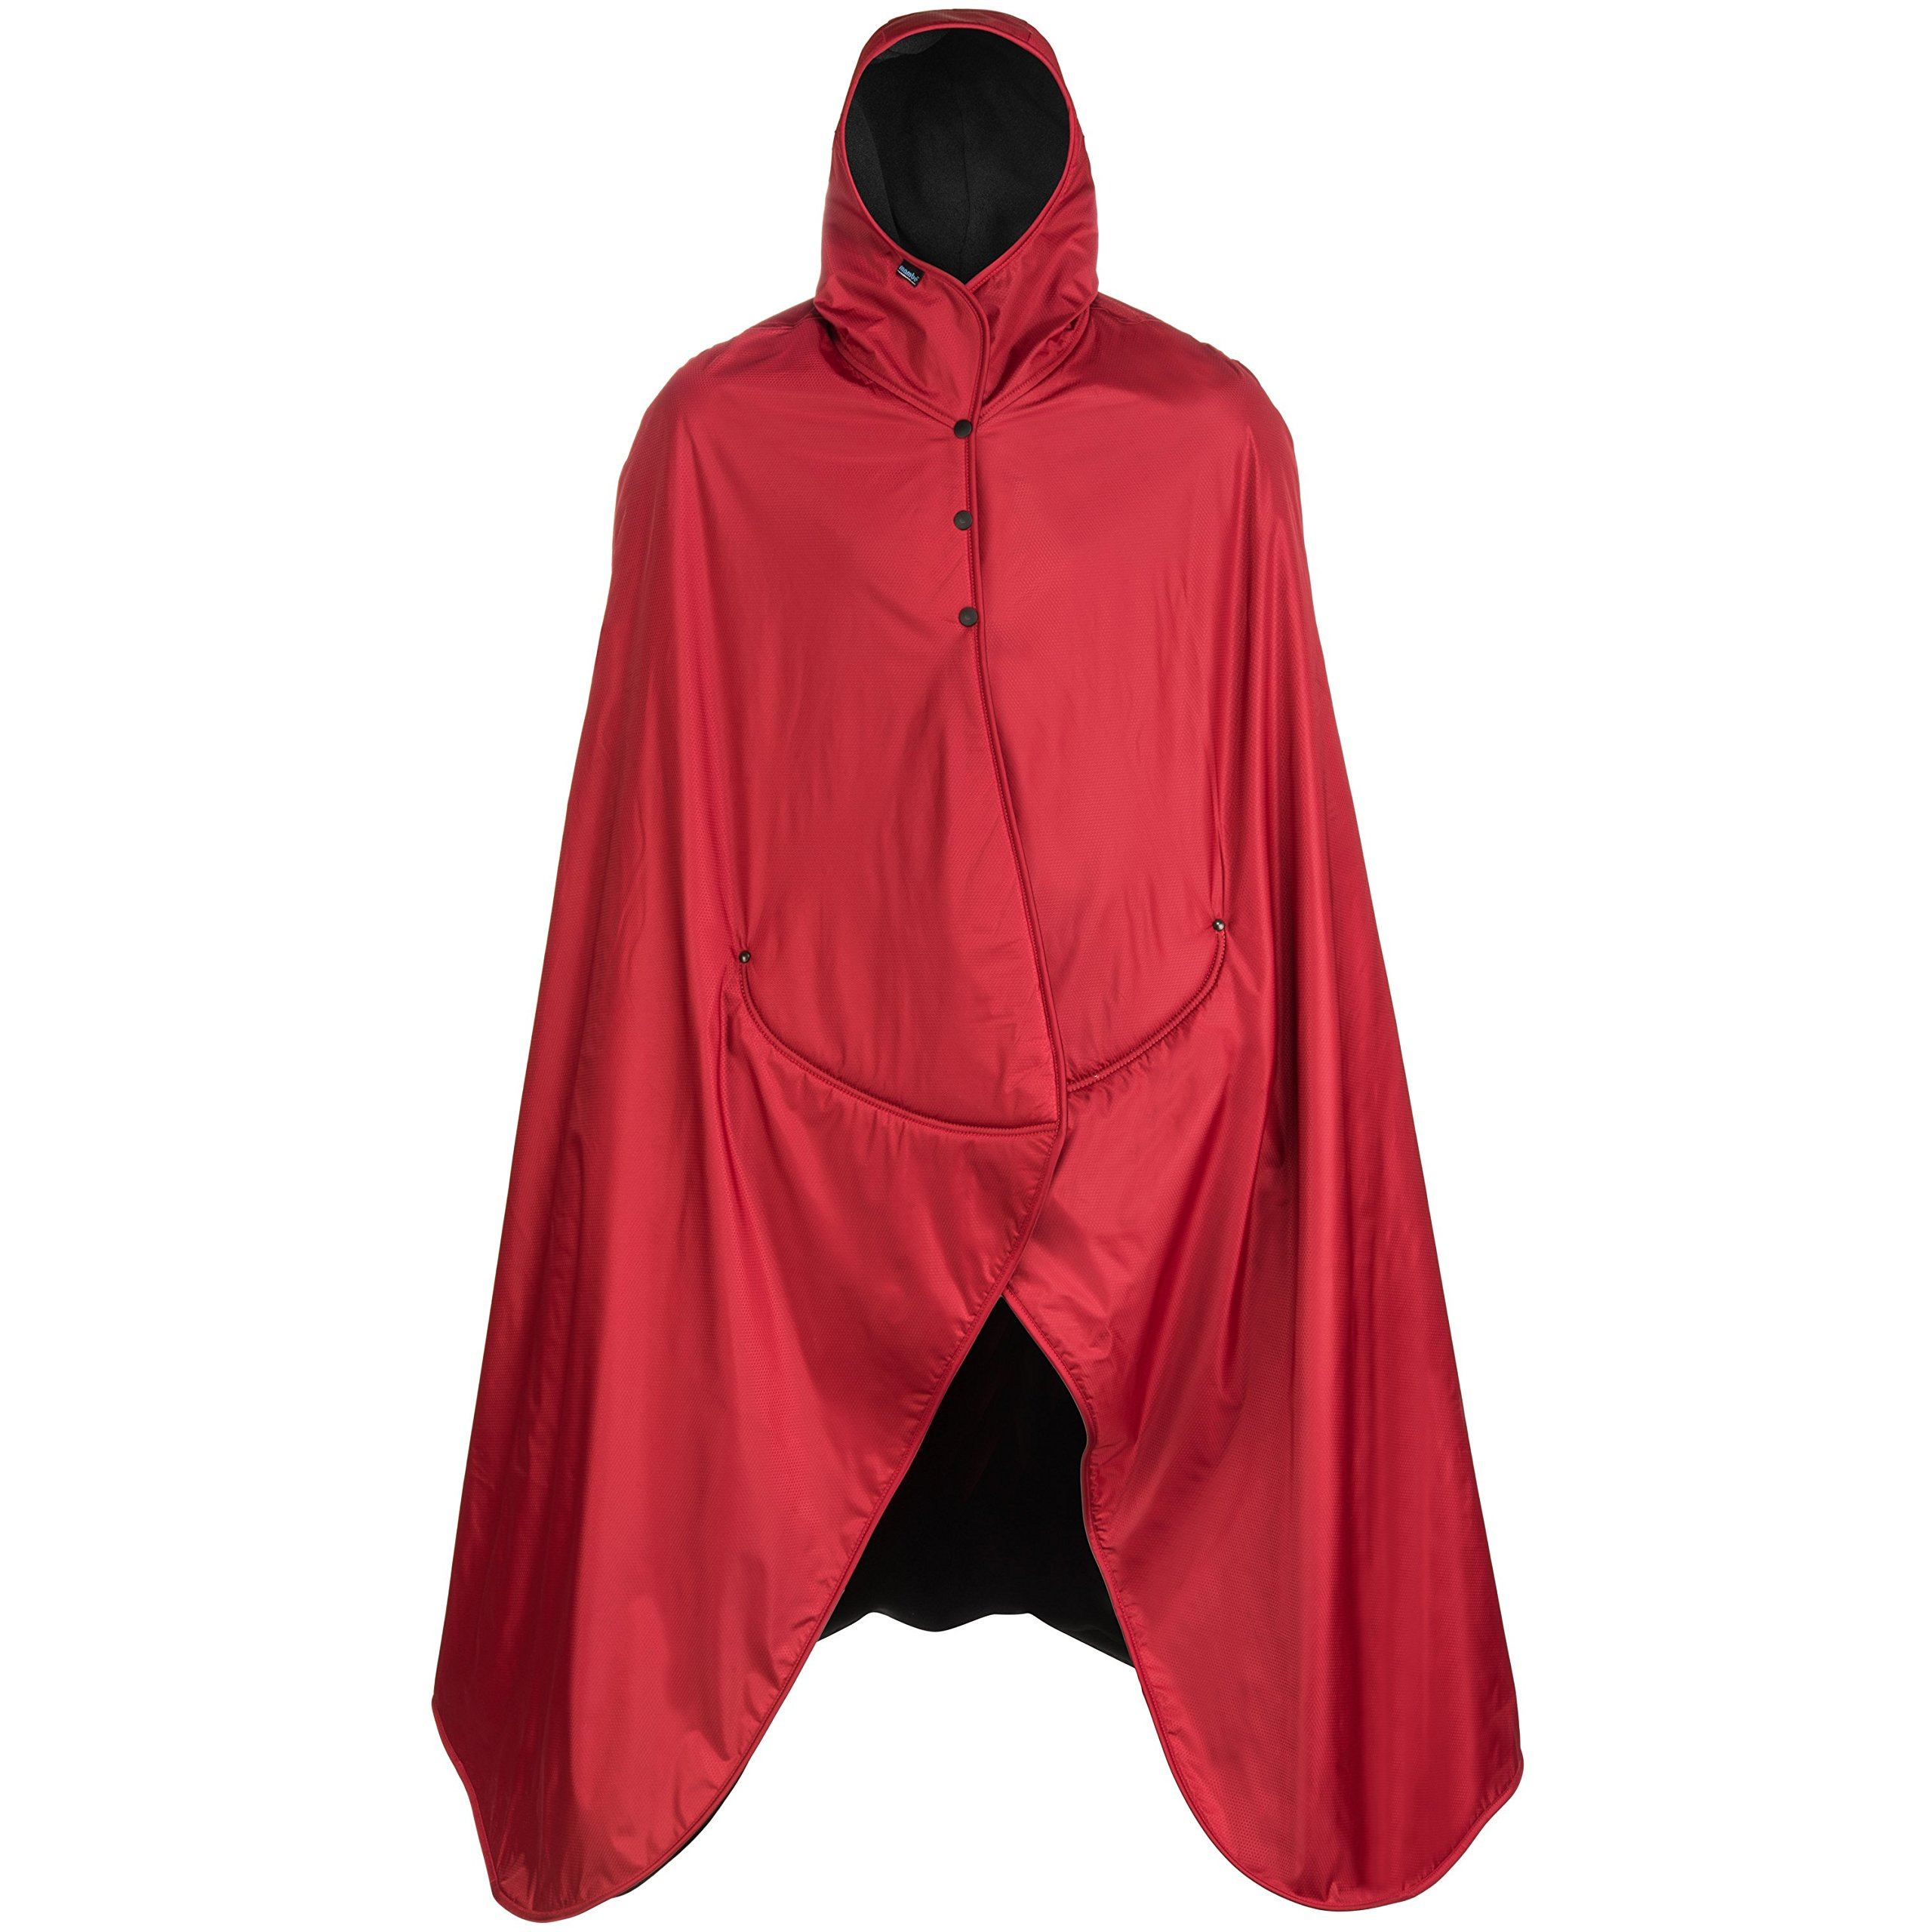 Mambe Extreme Weather 100% Waterproof/Windproof Hooded Blanket with Premium Stuff Sack (Size: XL, Red-Black) Made in The USA by Mambe